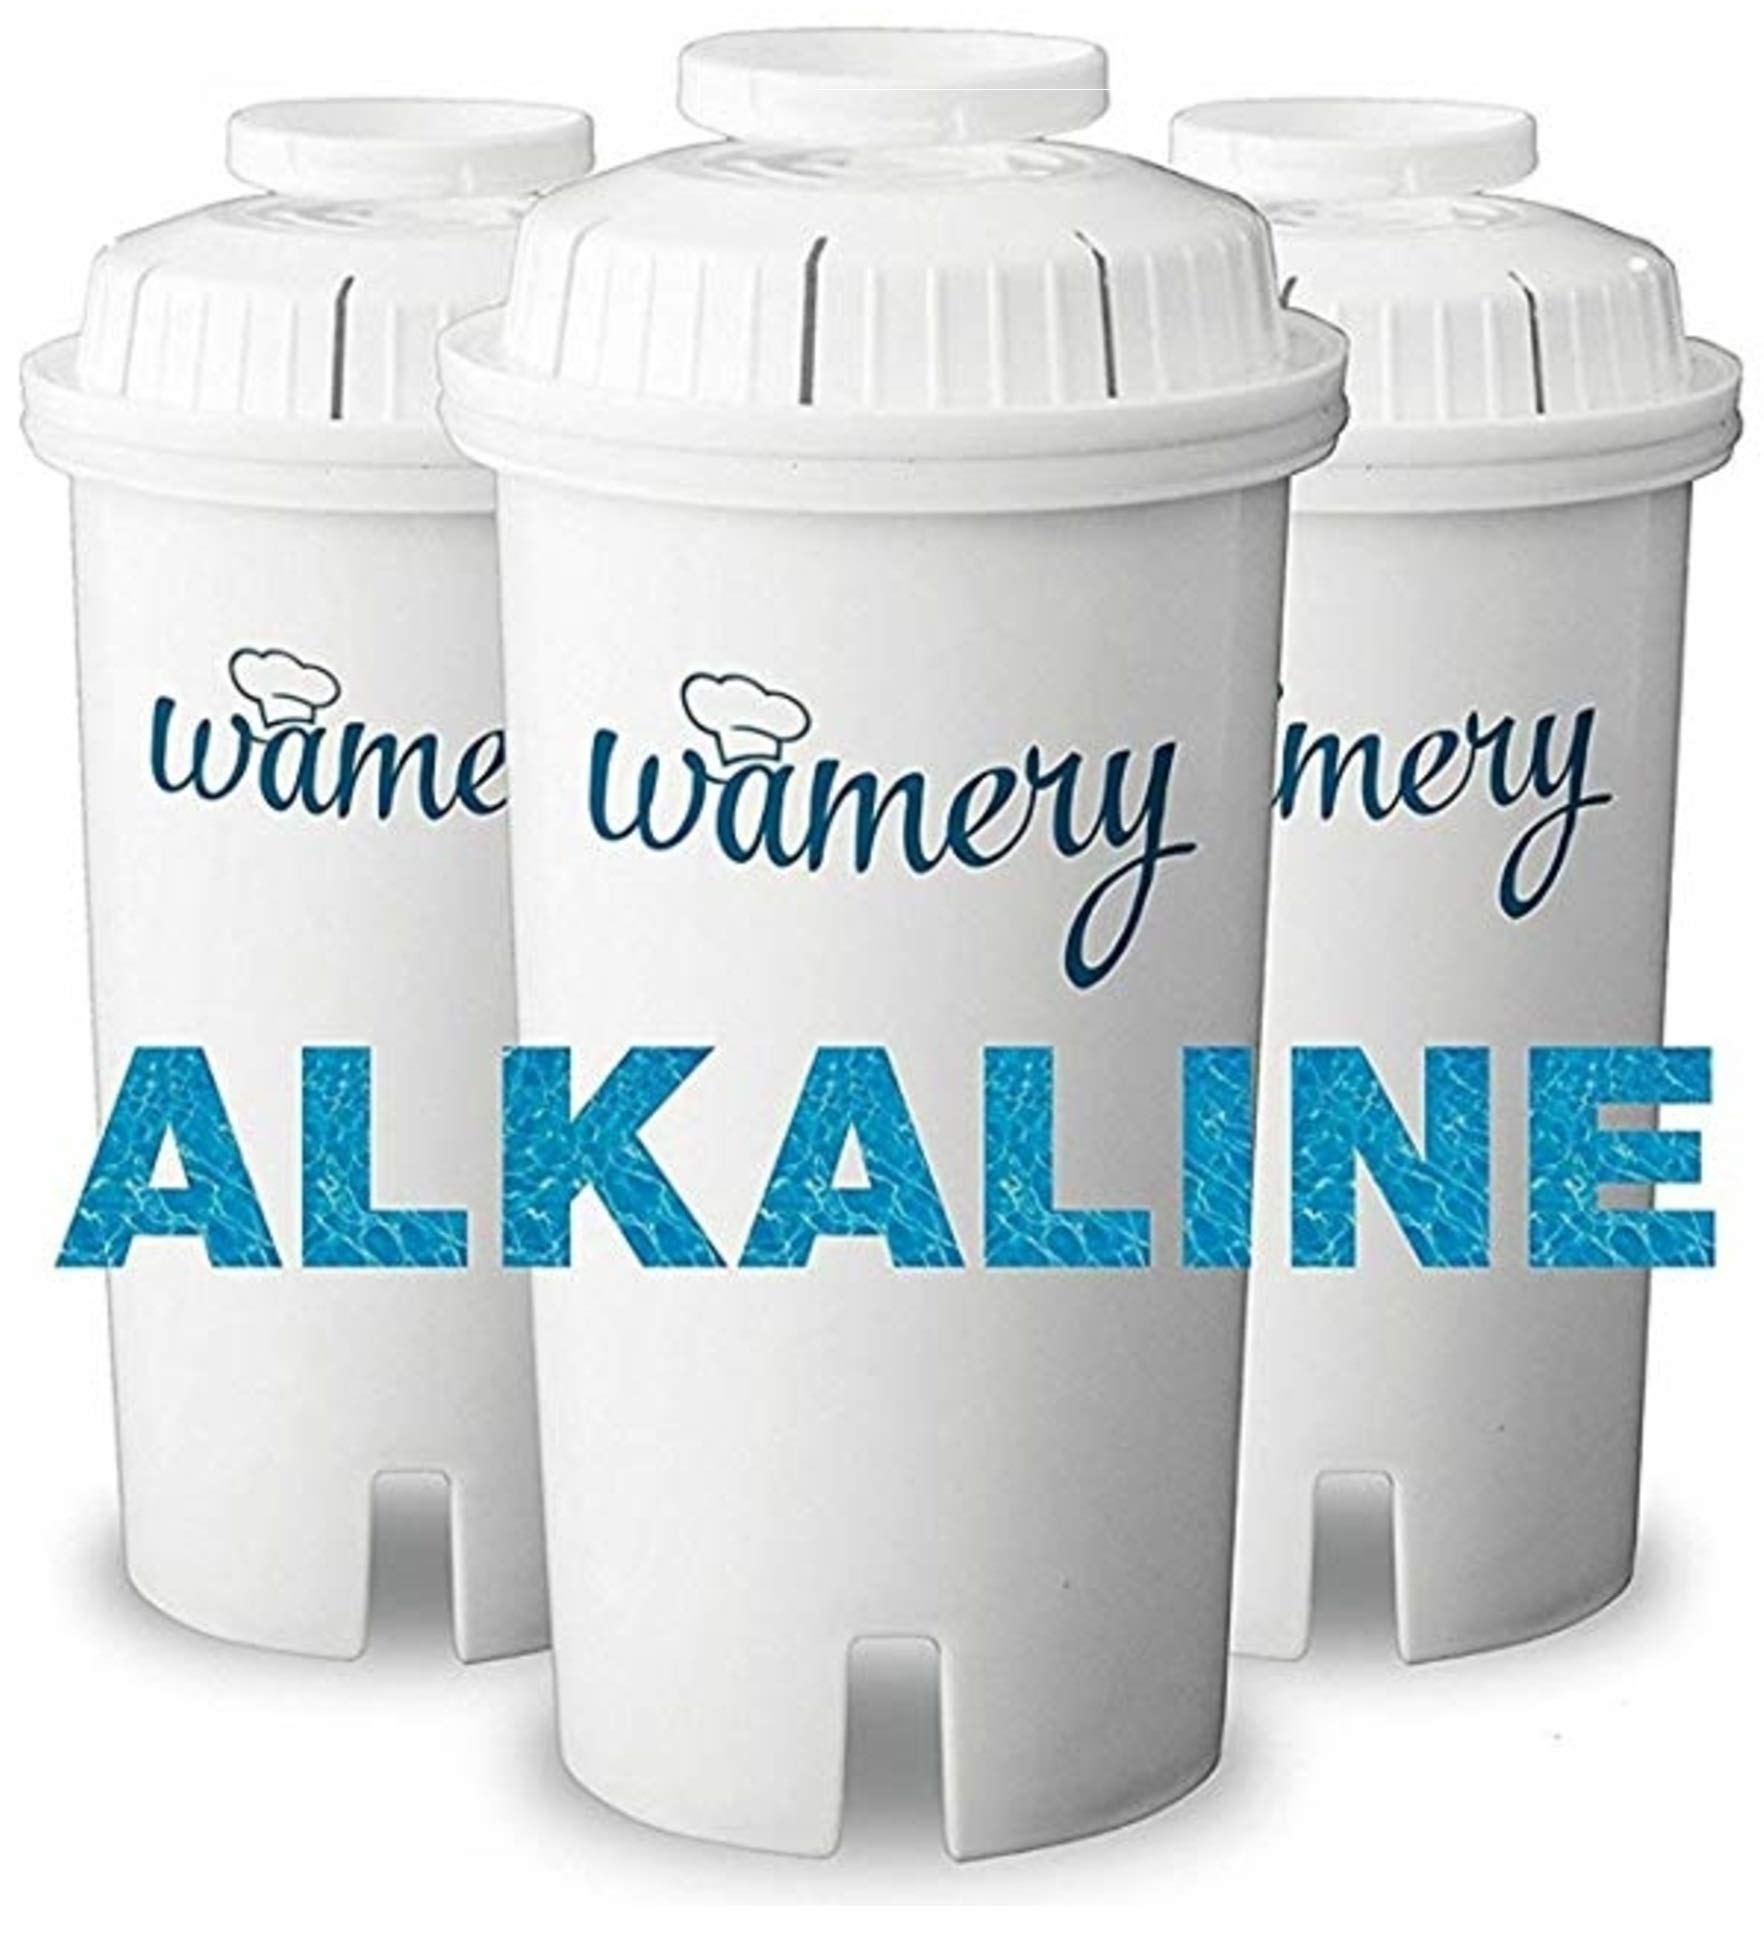 Wamery Certified Alkaline Water Filter Replacement 3-Pack, Enhanced 2020 Model, Fits Brita Pitcher, Increases Water pH, Removes Lead, Chlorine, Copper and More, Ionizer and Purifier System